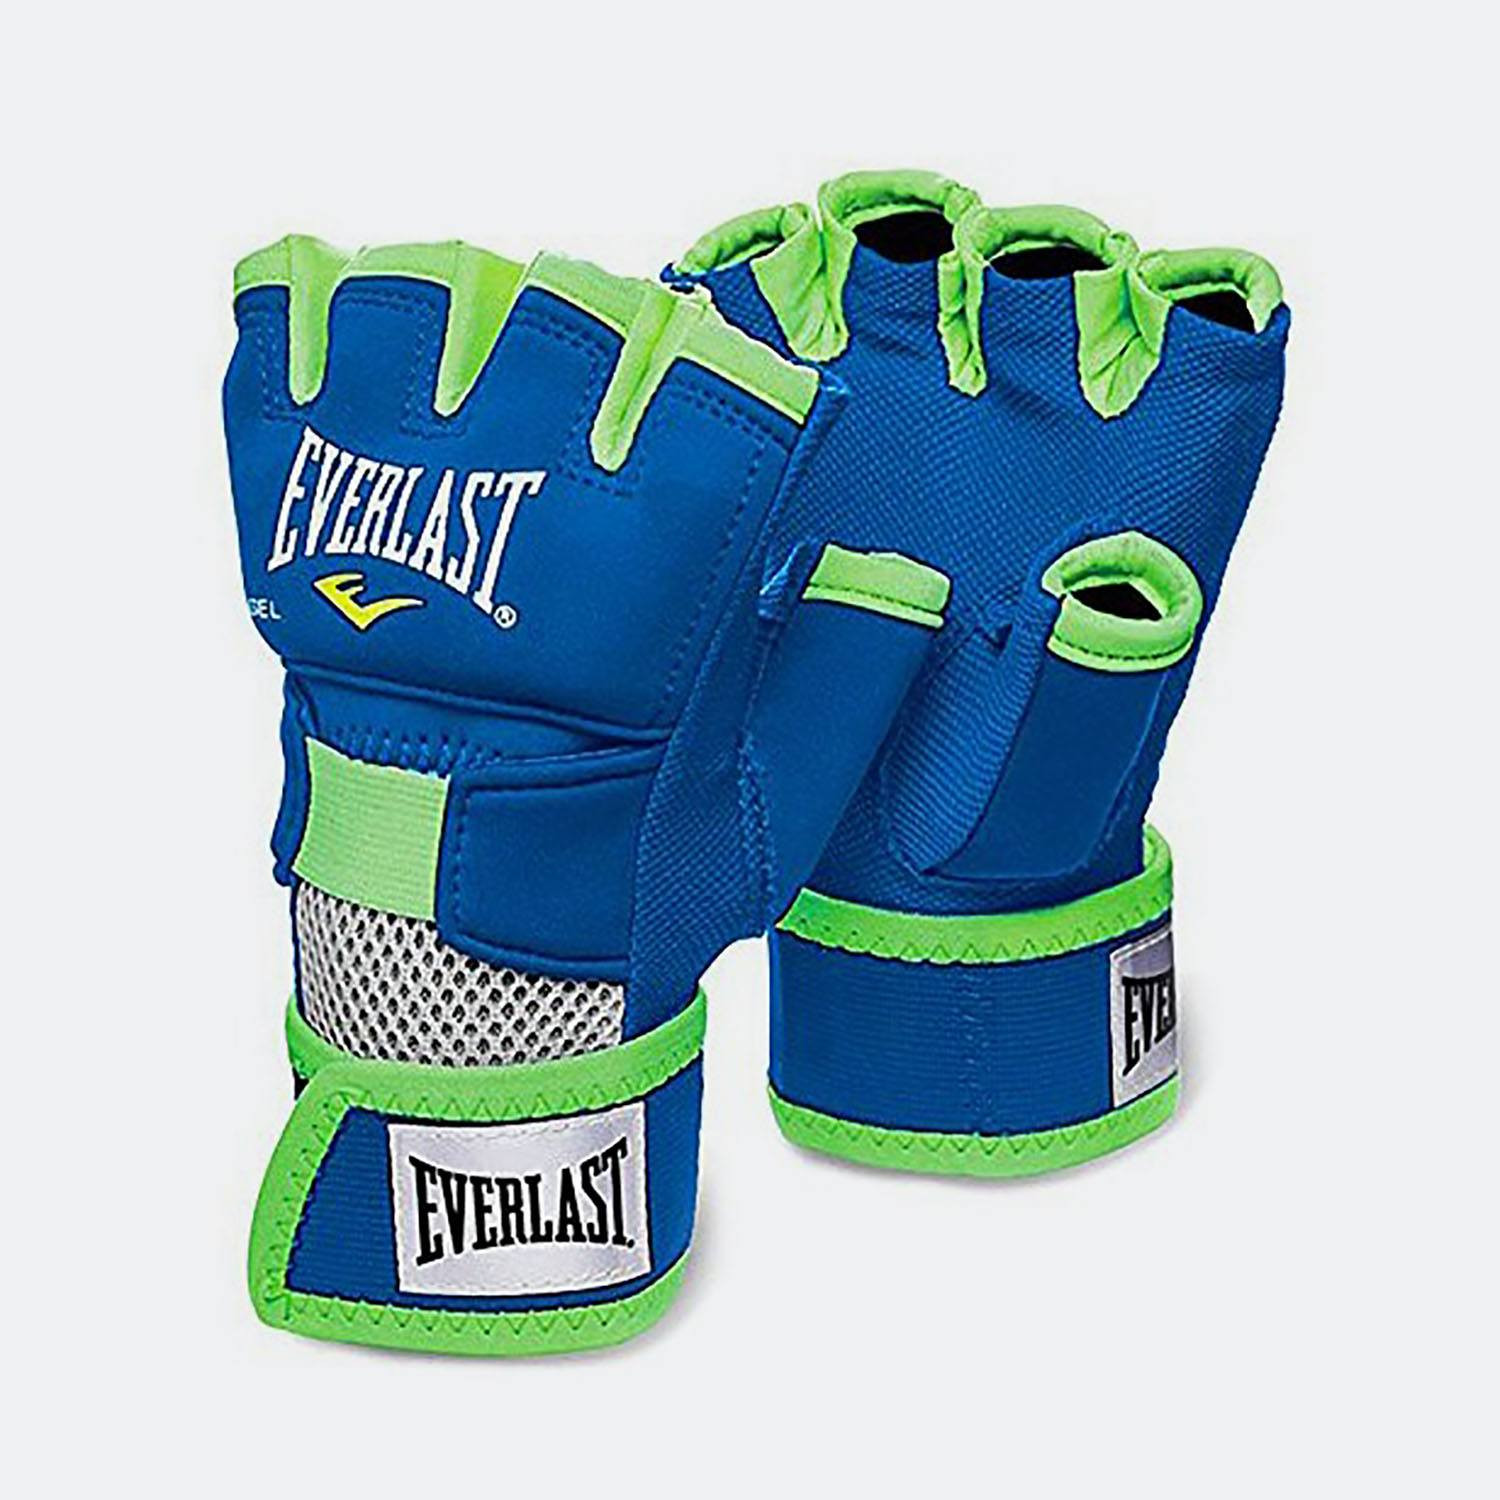 Everlast Evergel Glove Wraps (32912300032_2098)